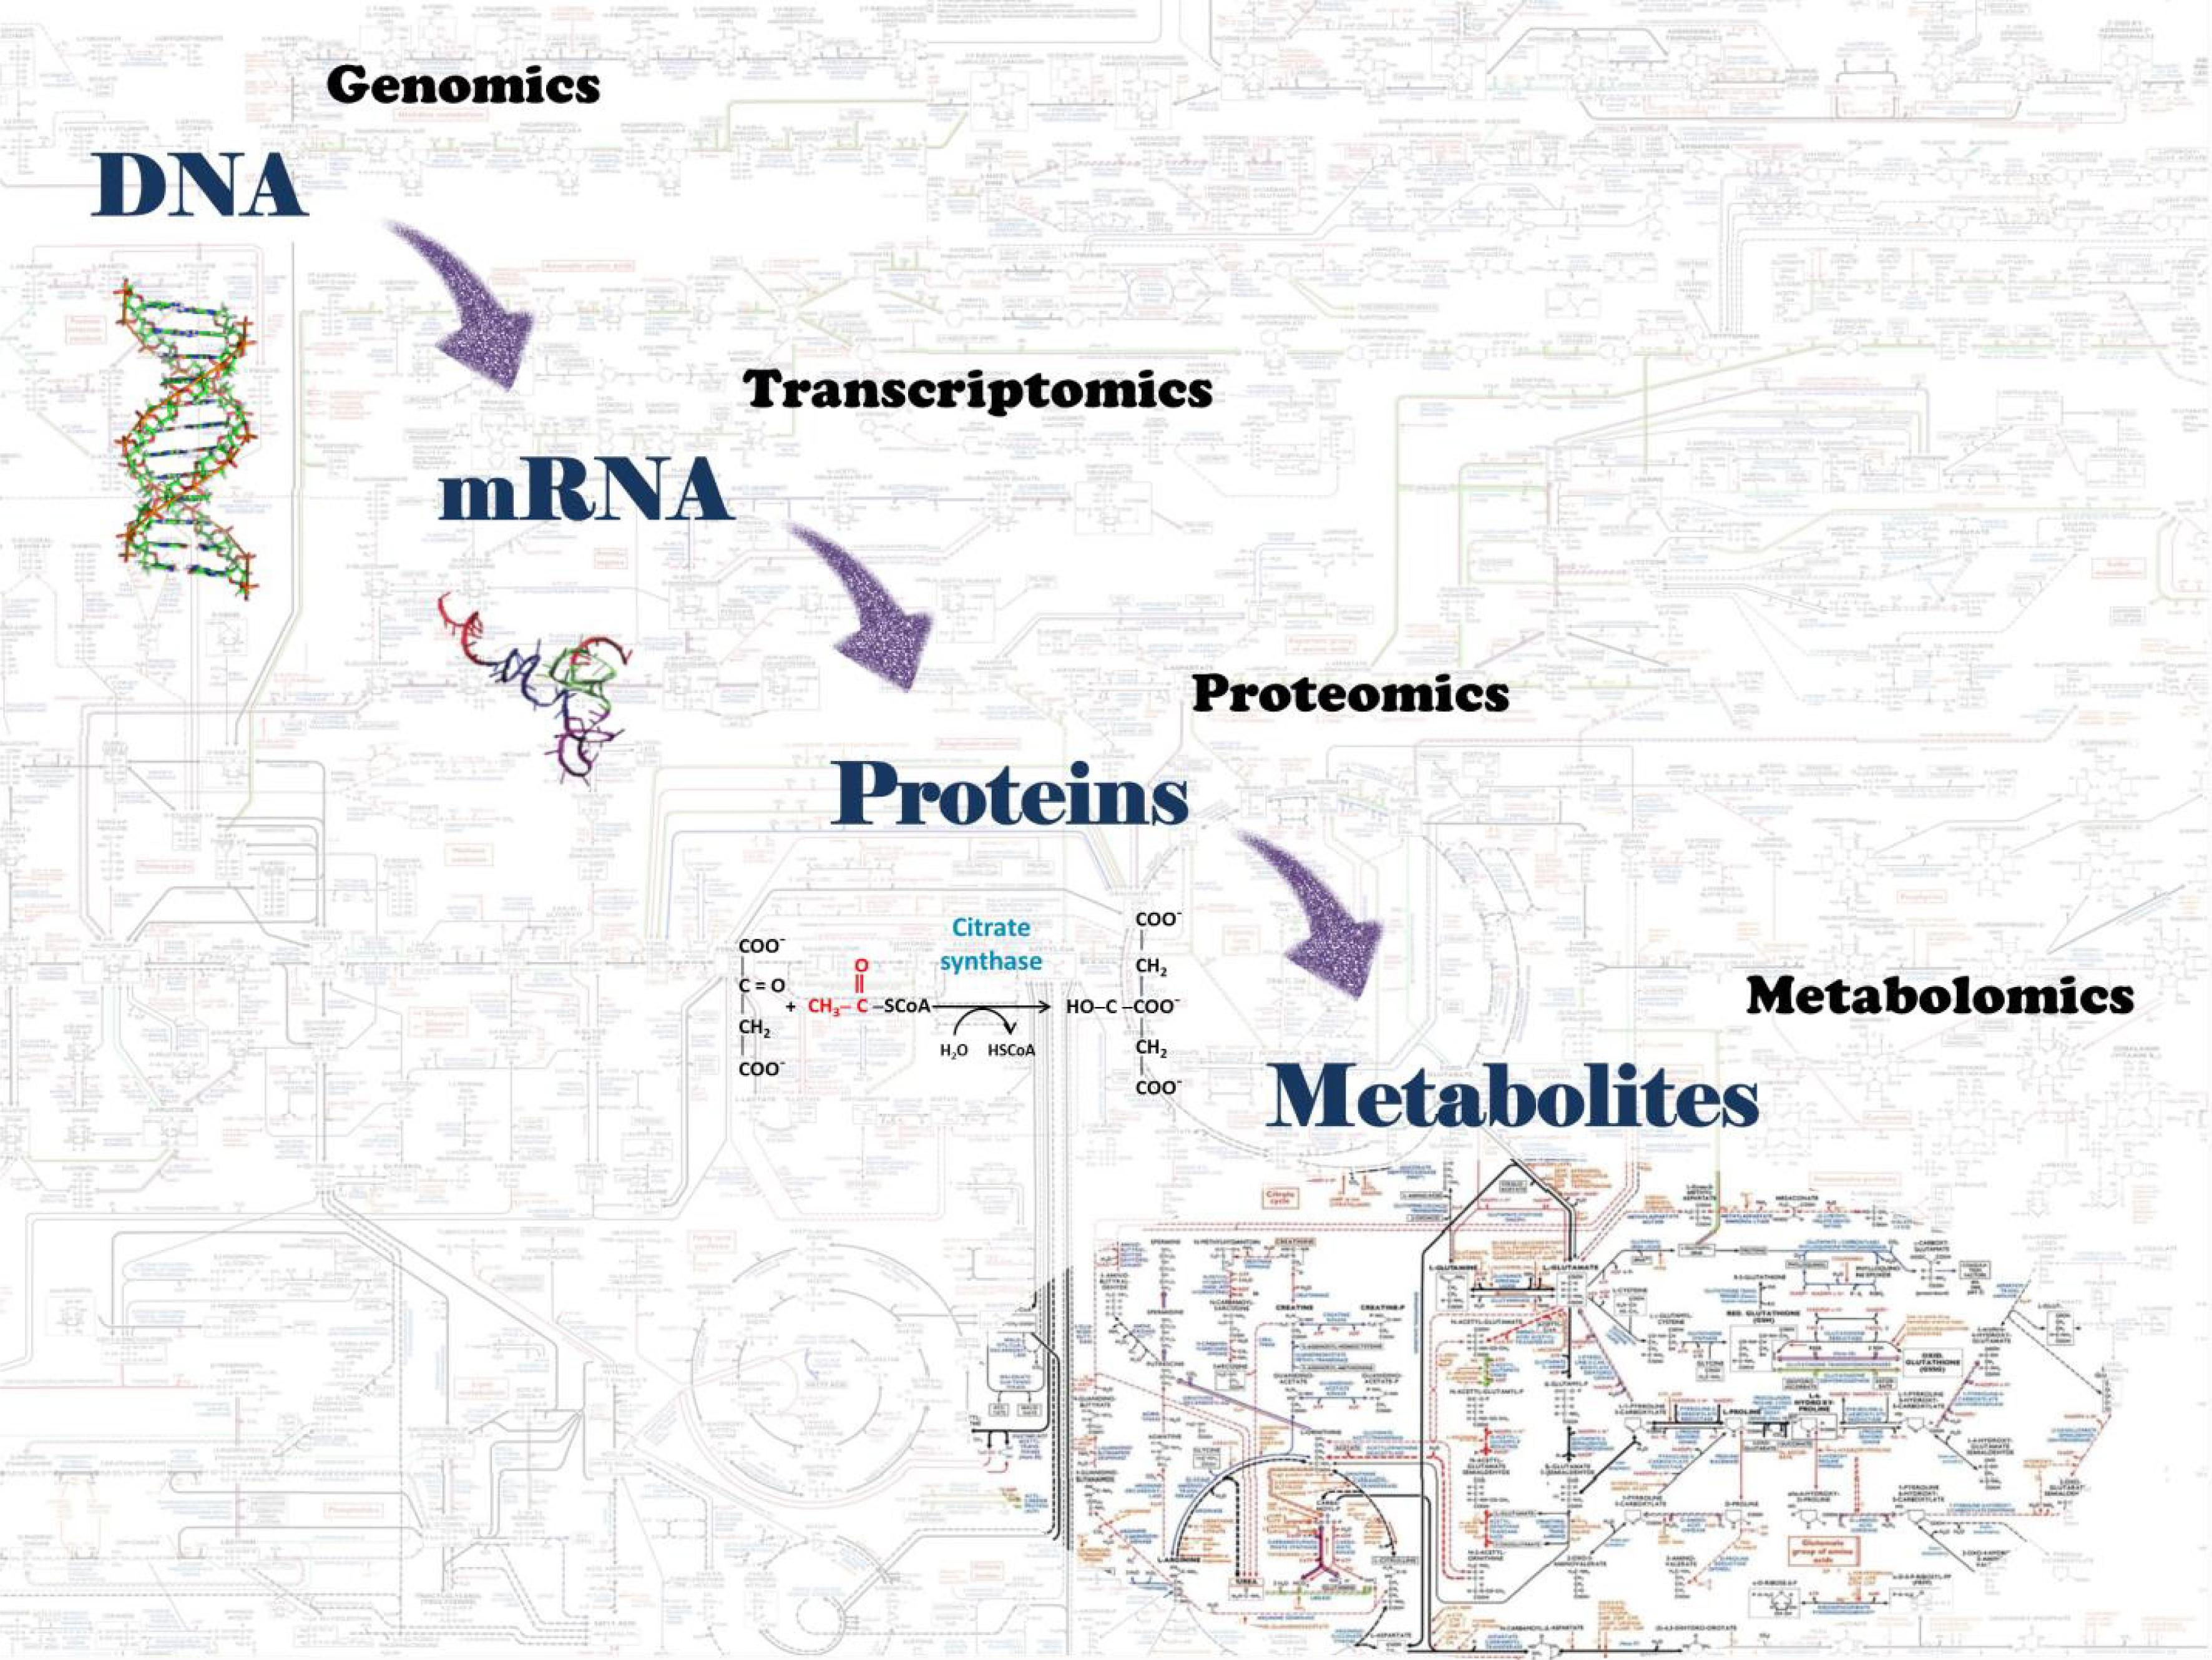 Omics science components of biological systems